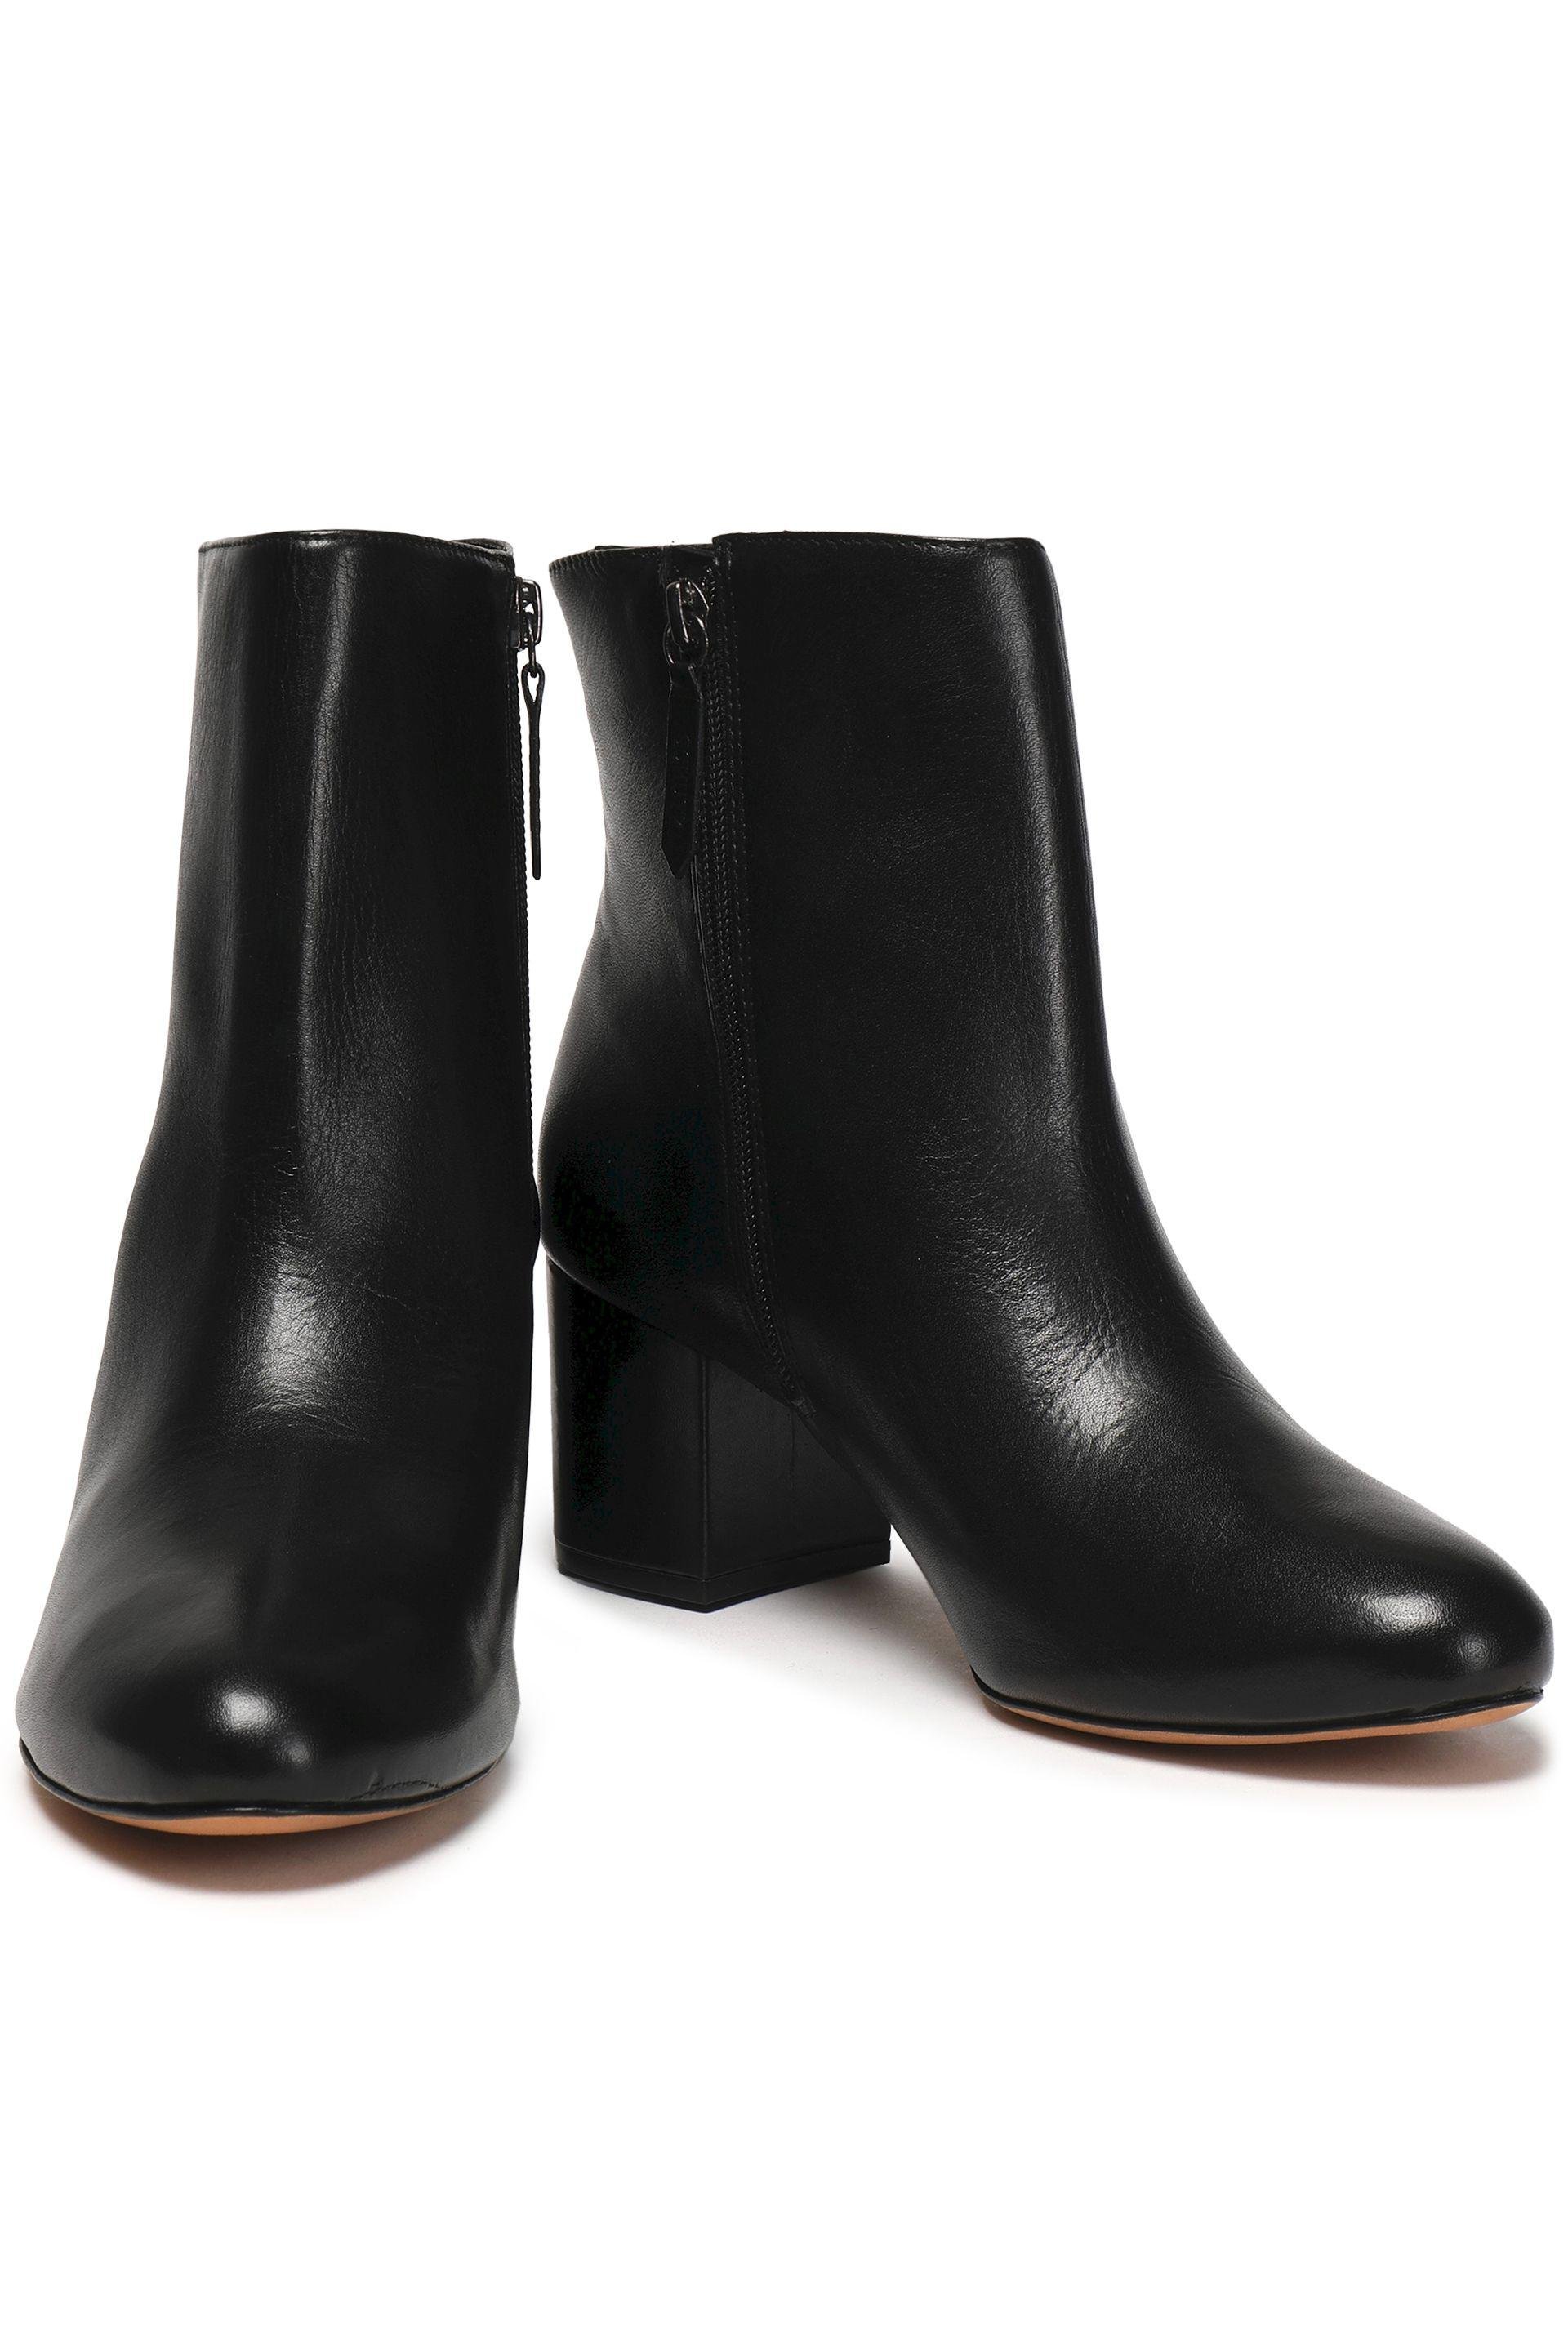 Schutz Leather Ankle Boots Black